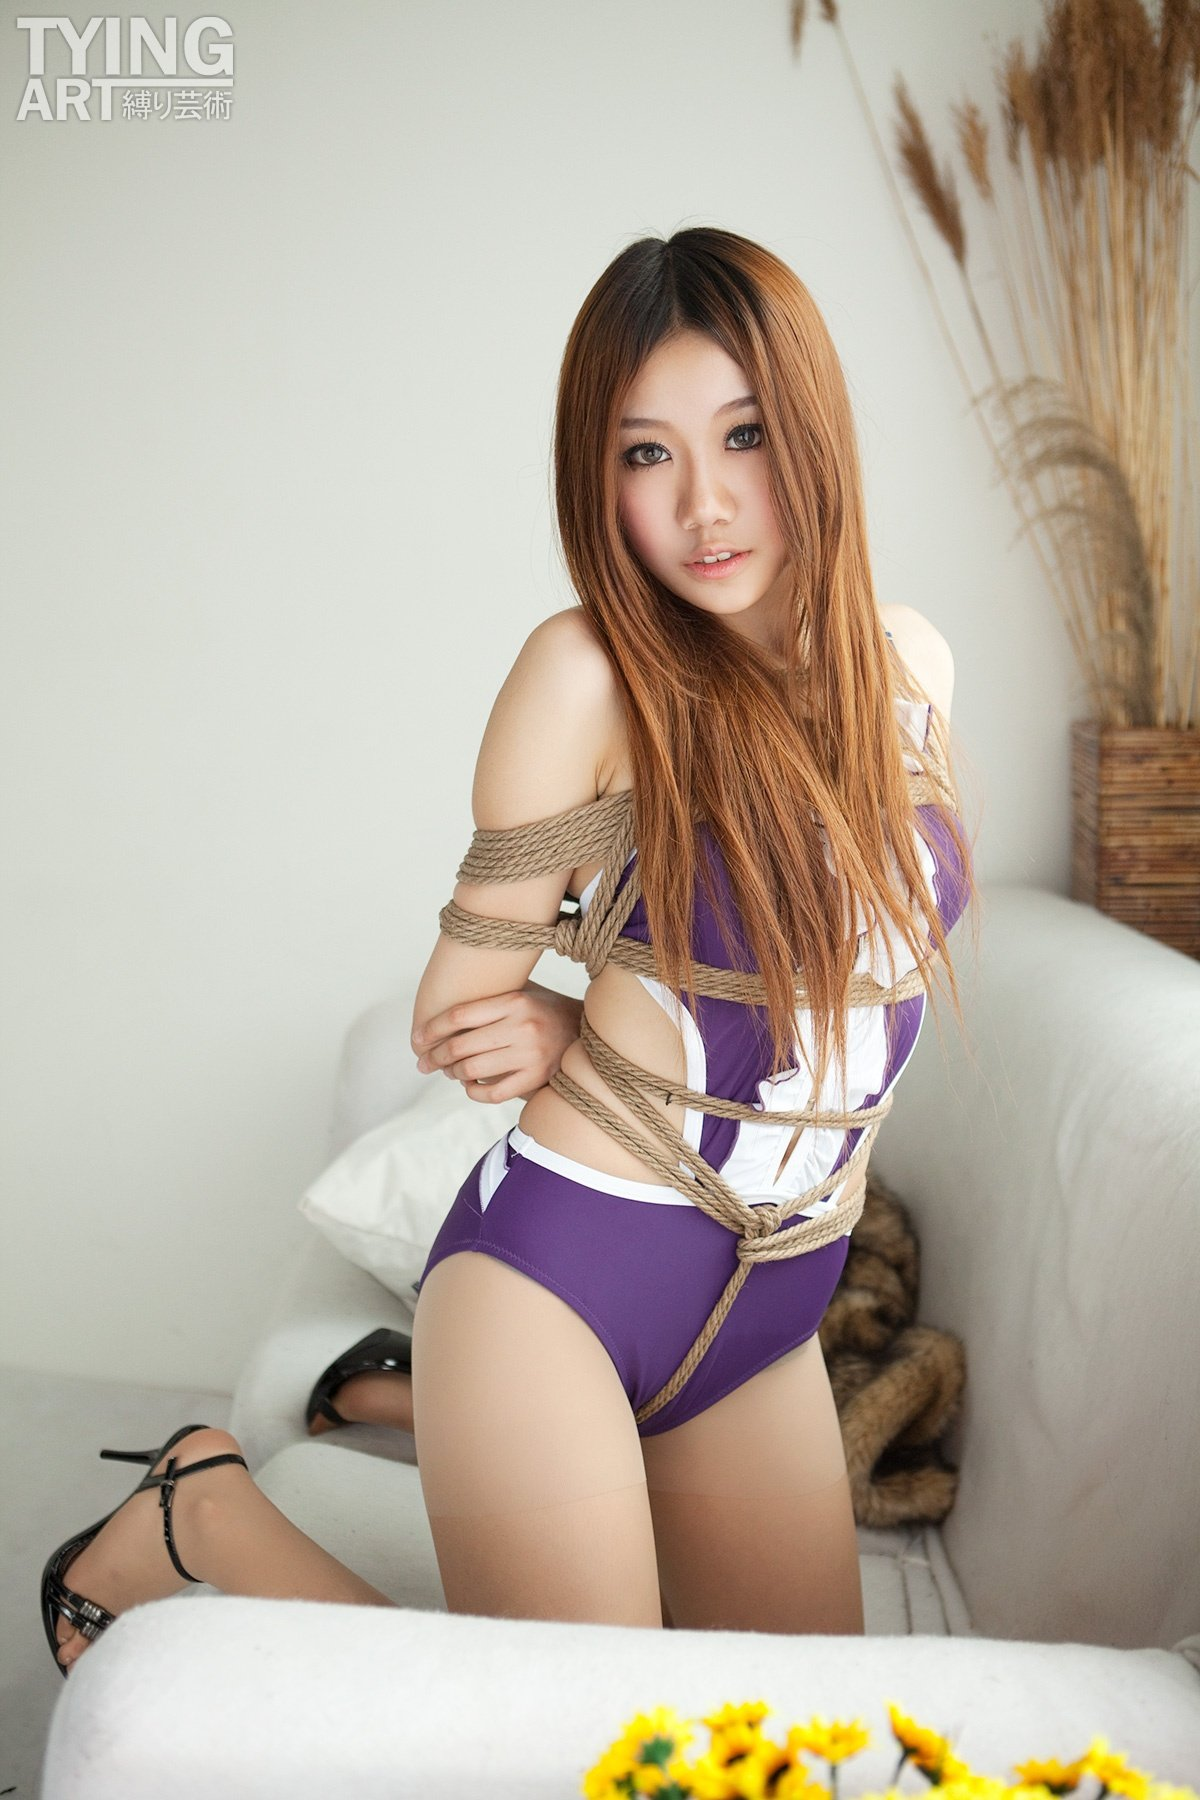 Gorgeous Asian Girl Tied In Rope 14492-6840